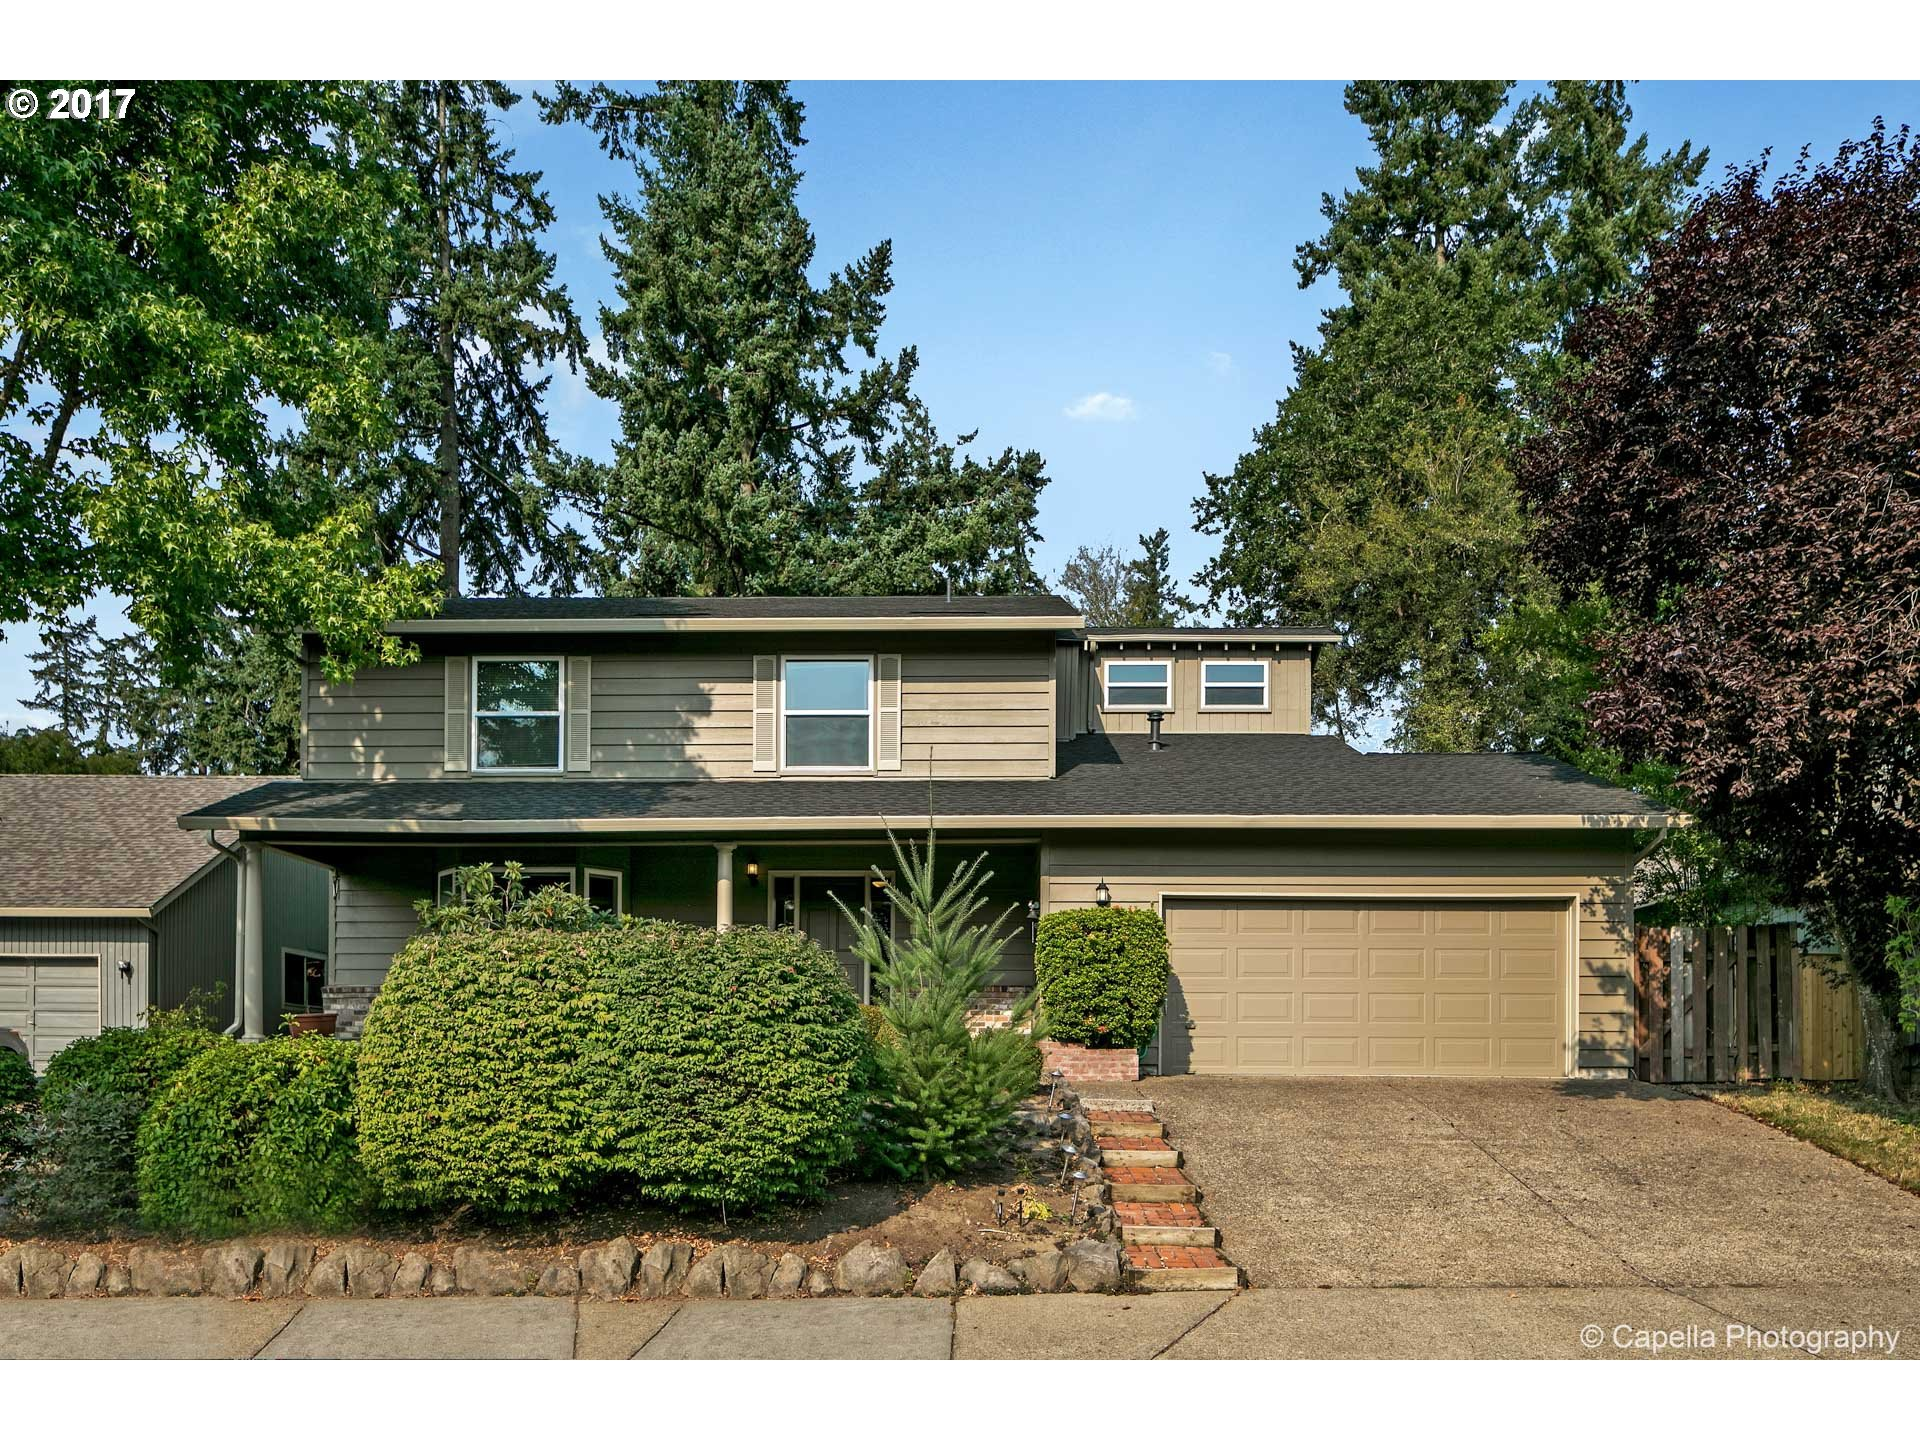 NEW PRICE. Spacious home on a cul-de-sac of Beaverton. Tip Top shape w/ Hardwood floors in entry, hall, half bath, kitchen, FR, Nook and Sunroom. All 5 bedrooms upstairs w/ many having walk-in closets. Master bathroom w/ claw foot tub &  tiled shower. 2017: Exterior painted as well as new interior doors & hardware, 2016: new windows, 2010: new furnace/AC, 2008: new water heater. Great backyard deck w/ built-in seating. NO HOA.